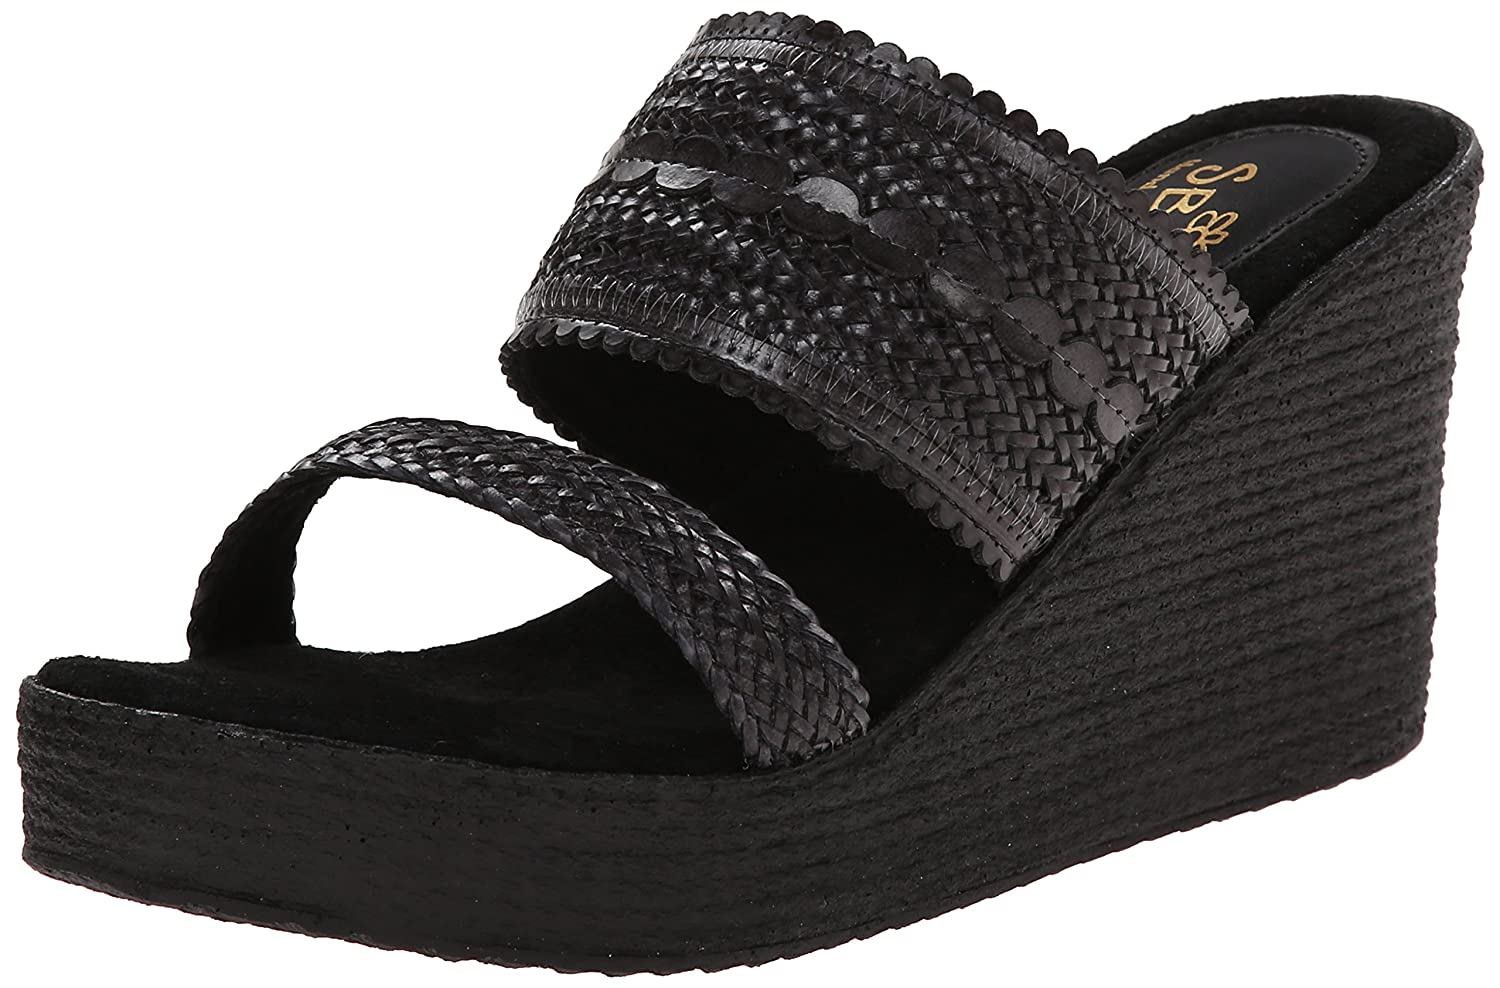 Sbicca Women's Anatase Wedge Sandal B00O1BJ654 10 B(M) US|Black